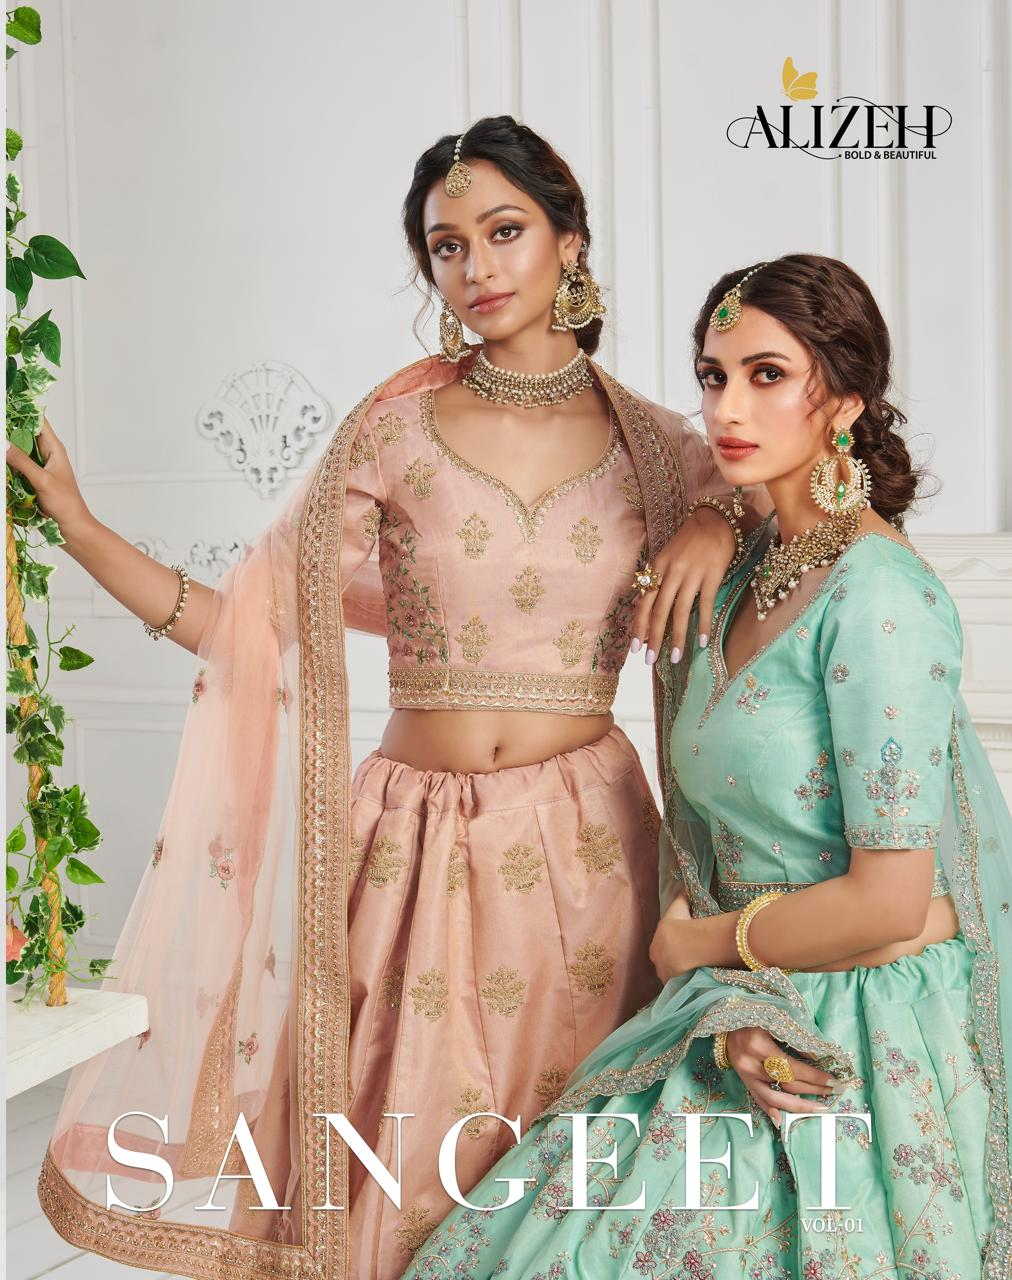 Alizeh Sangeet Vol 1 Silk With Heavy Thread Embroidery Work With Sequence Work Designer Bridal Leheanga Choli Collection